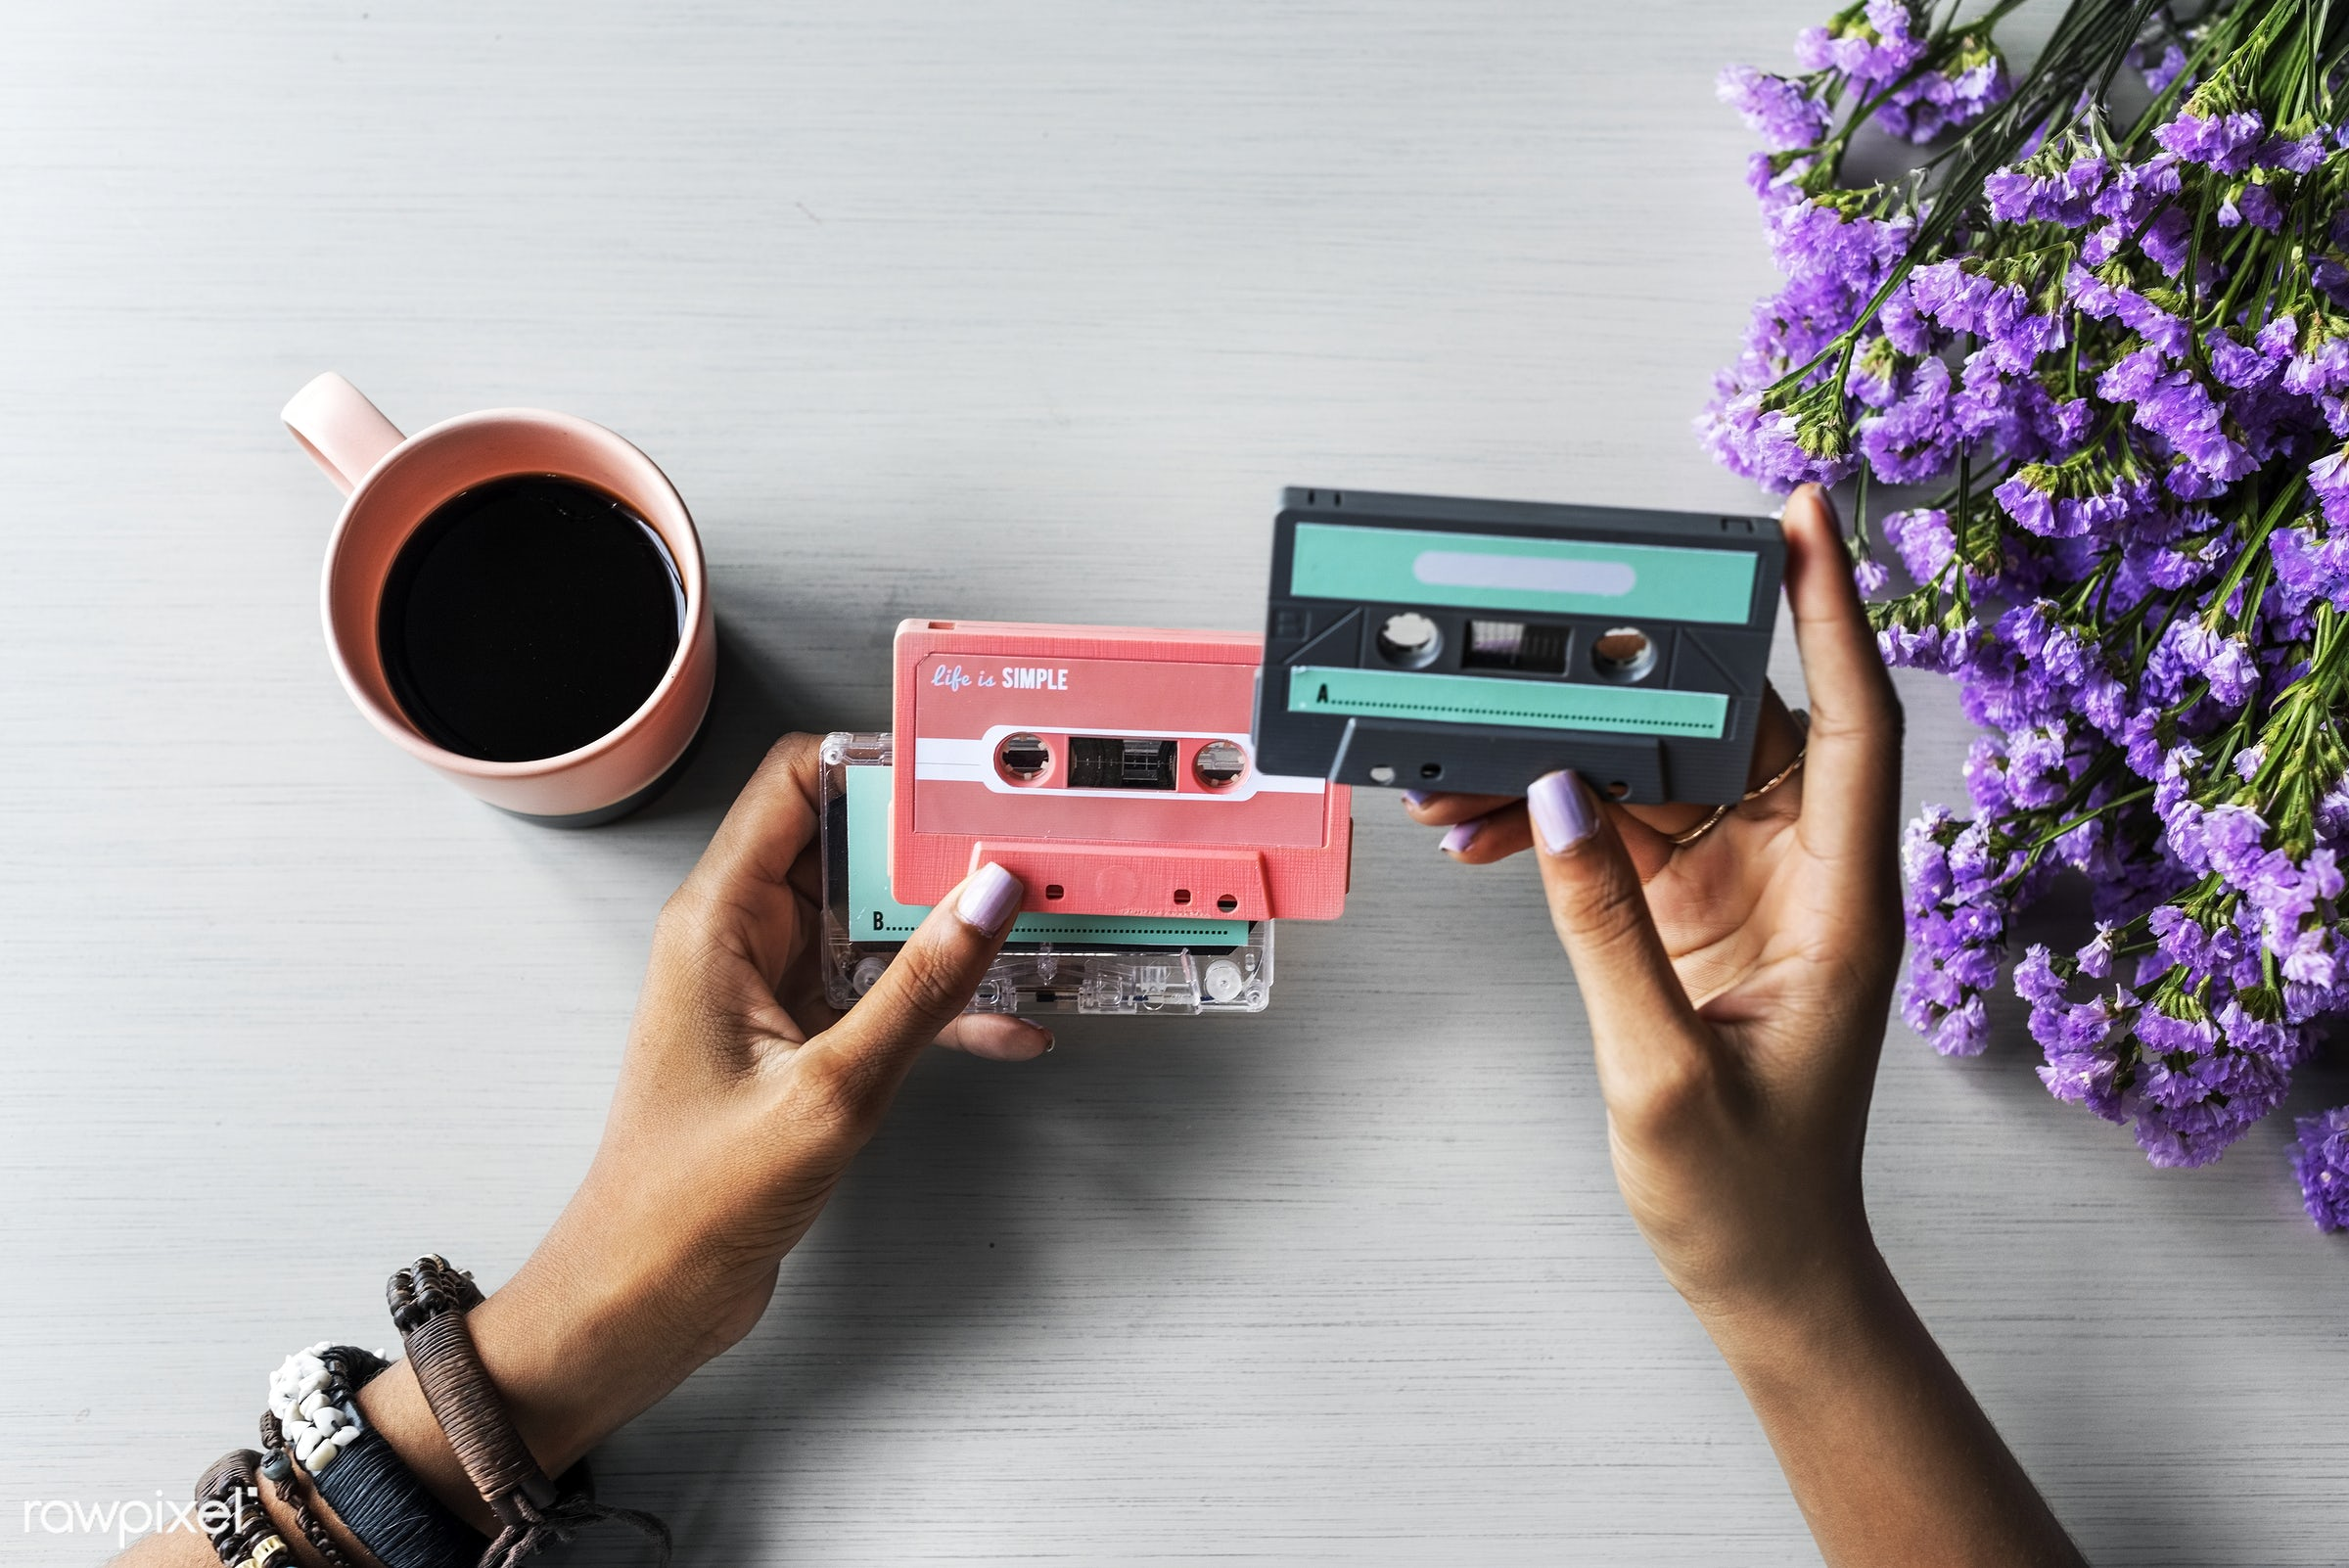 cup, rehearsal, old, person, relax, feels, equipment, party, recreation, love, woman, lifestyle, musician, flowers, cassette...